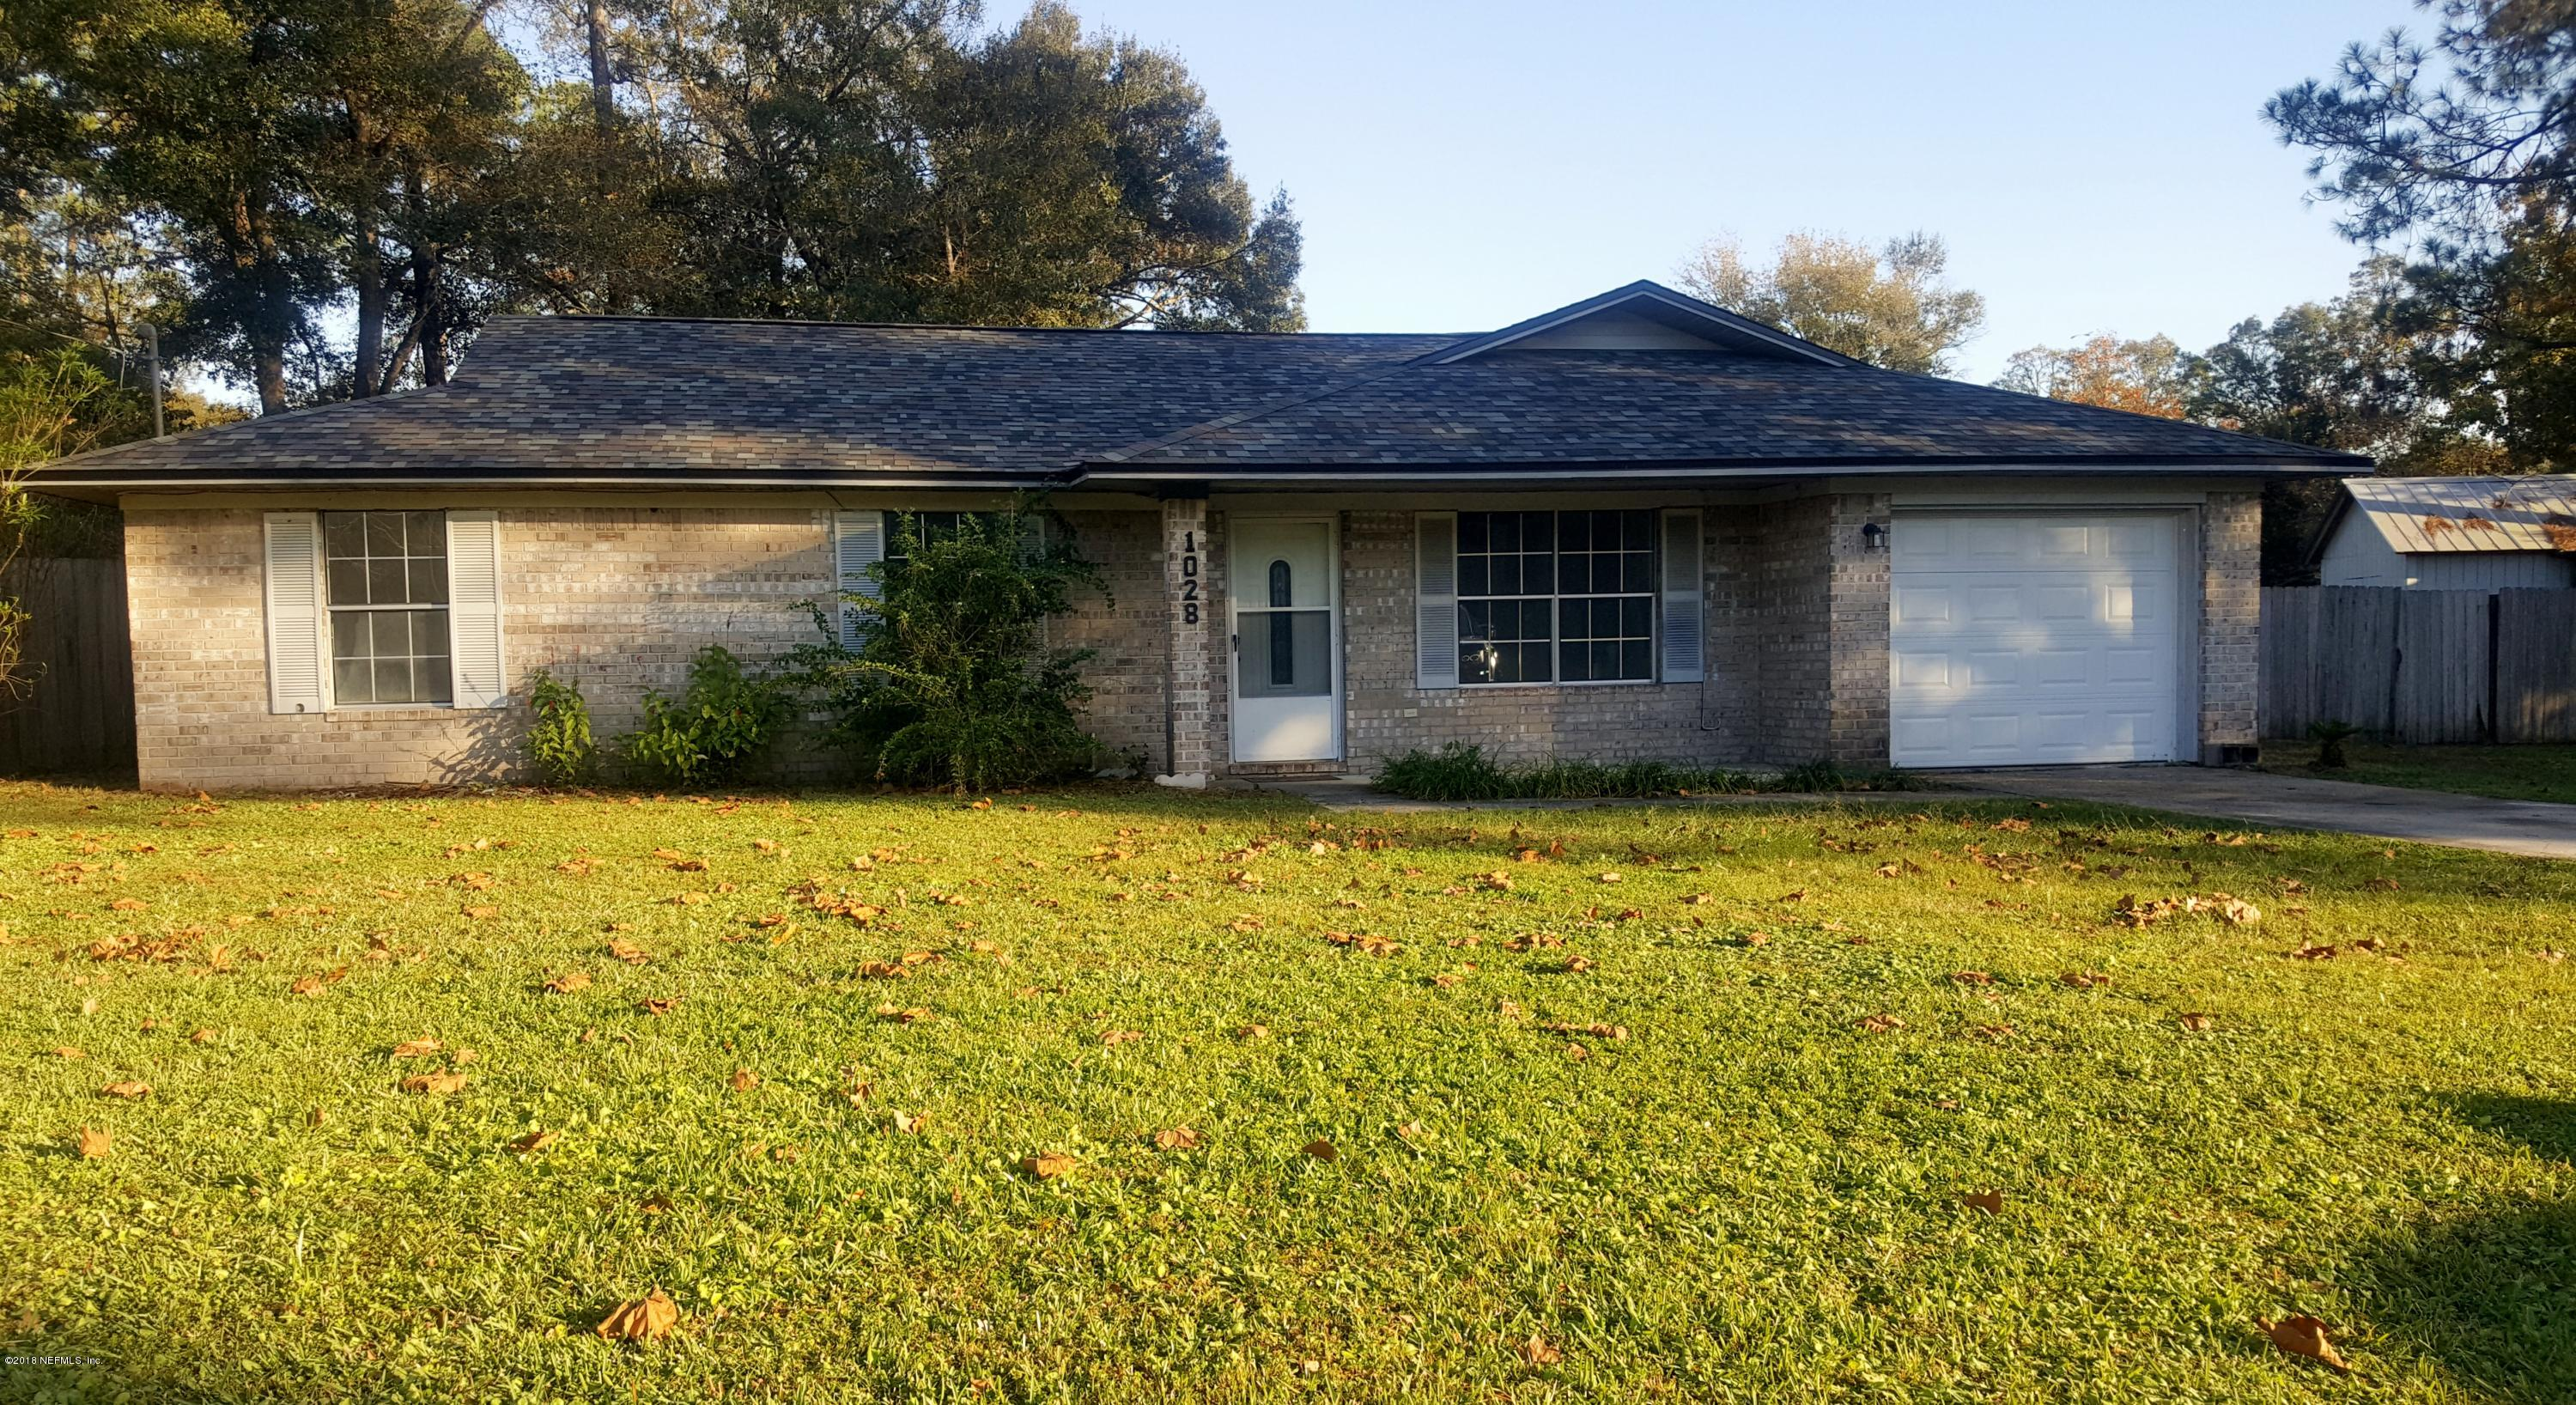 1028 MEADOWS, STARKE, FLORIDA 32091, 3 Bedrooms Bedrooms, ,1 BathroomBathrooms,Residential - single family,For sale,MEADOWS,970088